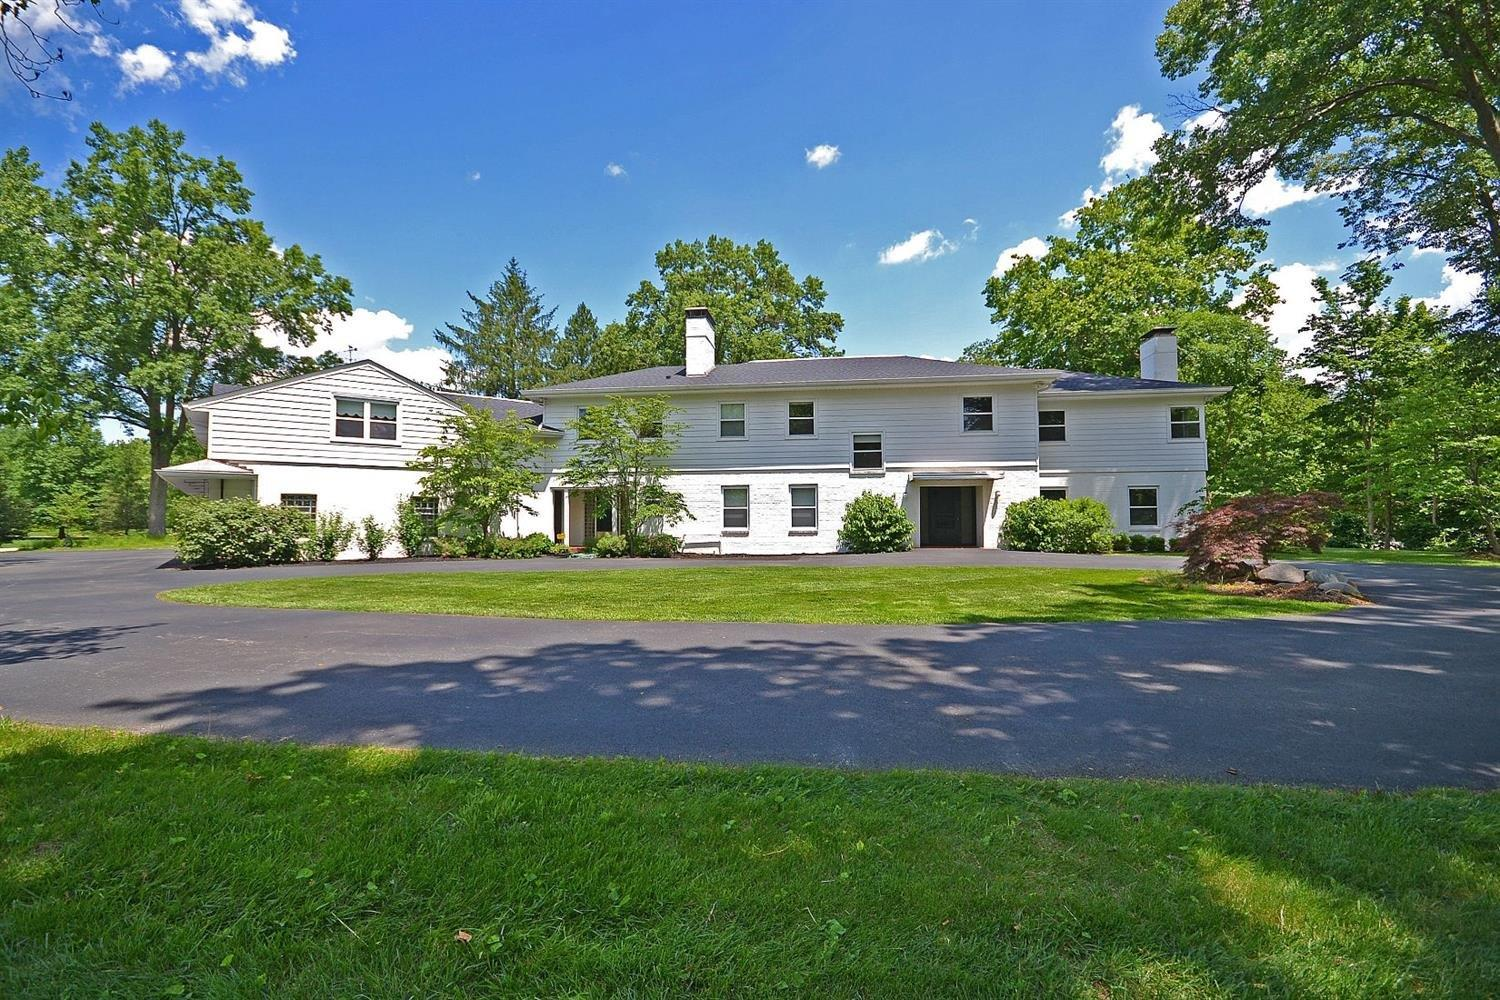 At 9163sq ft this home lives large*Private 2.3 acres w/flat lawns/superb landscaping*Built to exacting standards in 1948 w/exceptional architectural details*Open floor-plan*All rooms are large w/windows aplenty*Pool/pool house*New roof & mechanicals & $70K geo-thermal HVAC*Oversized garage*An impeccably maintained family compound for the ages.